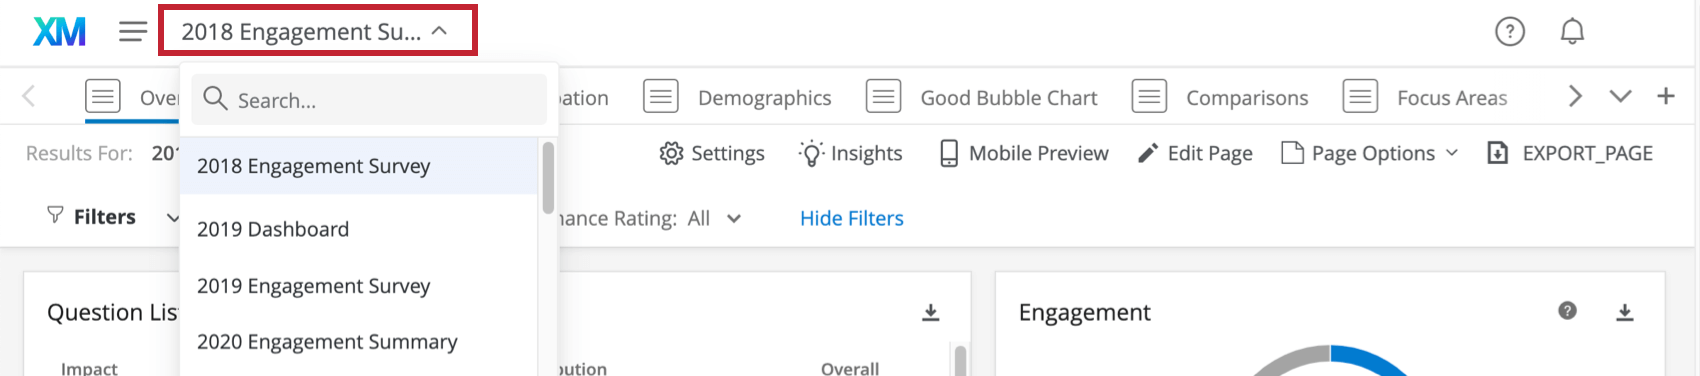 Top-left of the dashboard has its name, which when clicked allows you to select a different dashboard